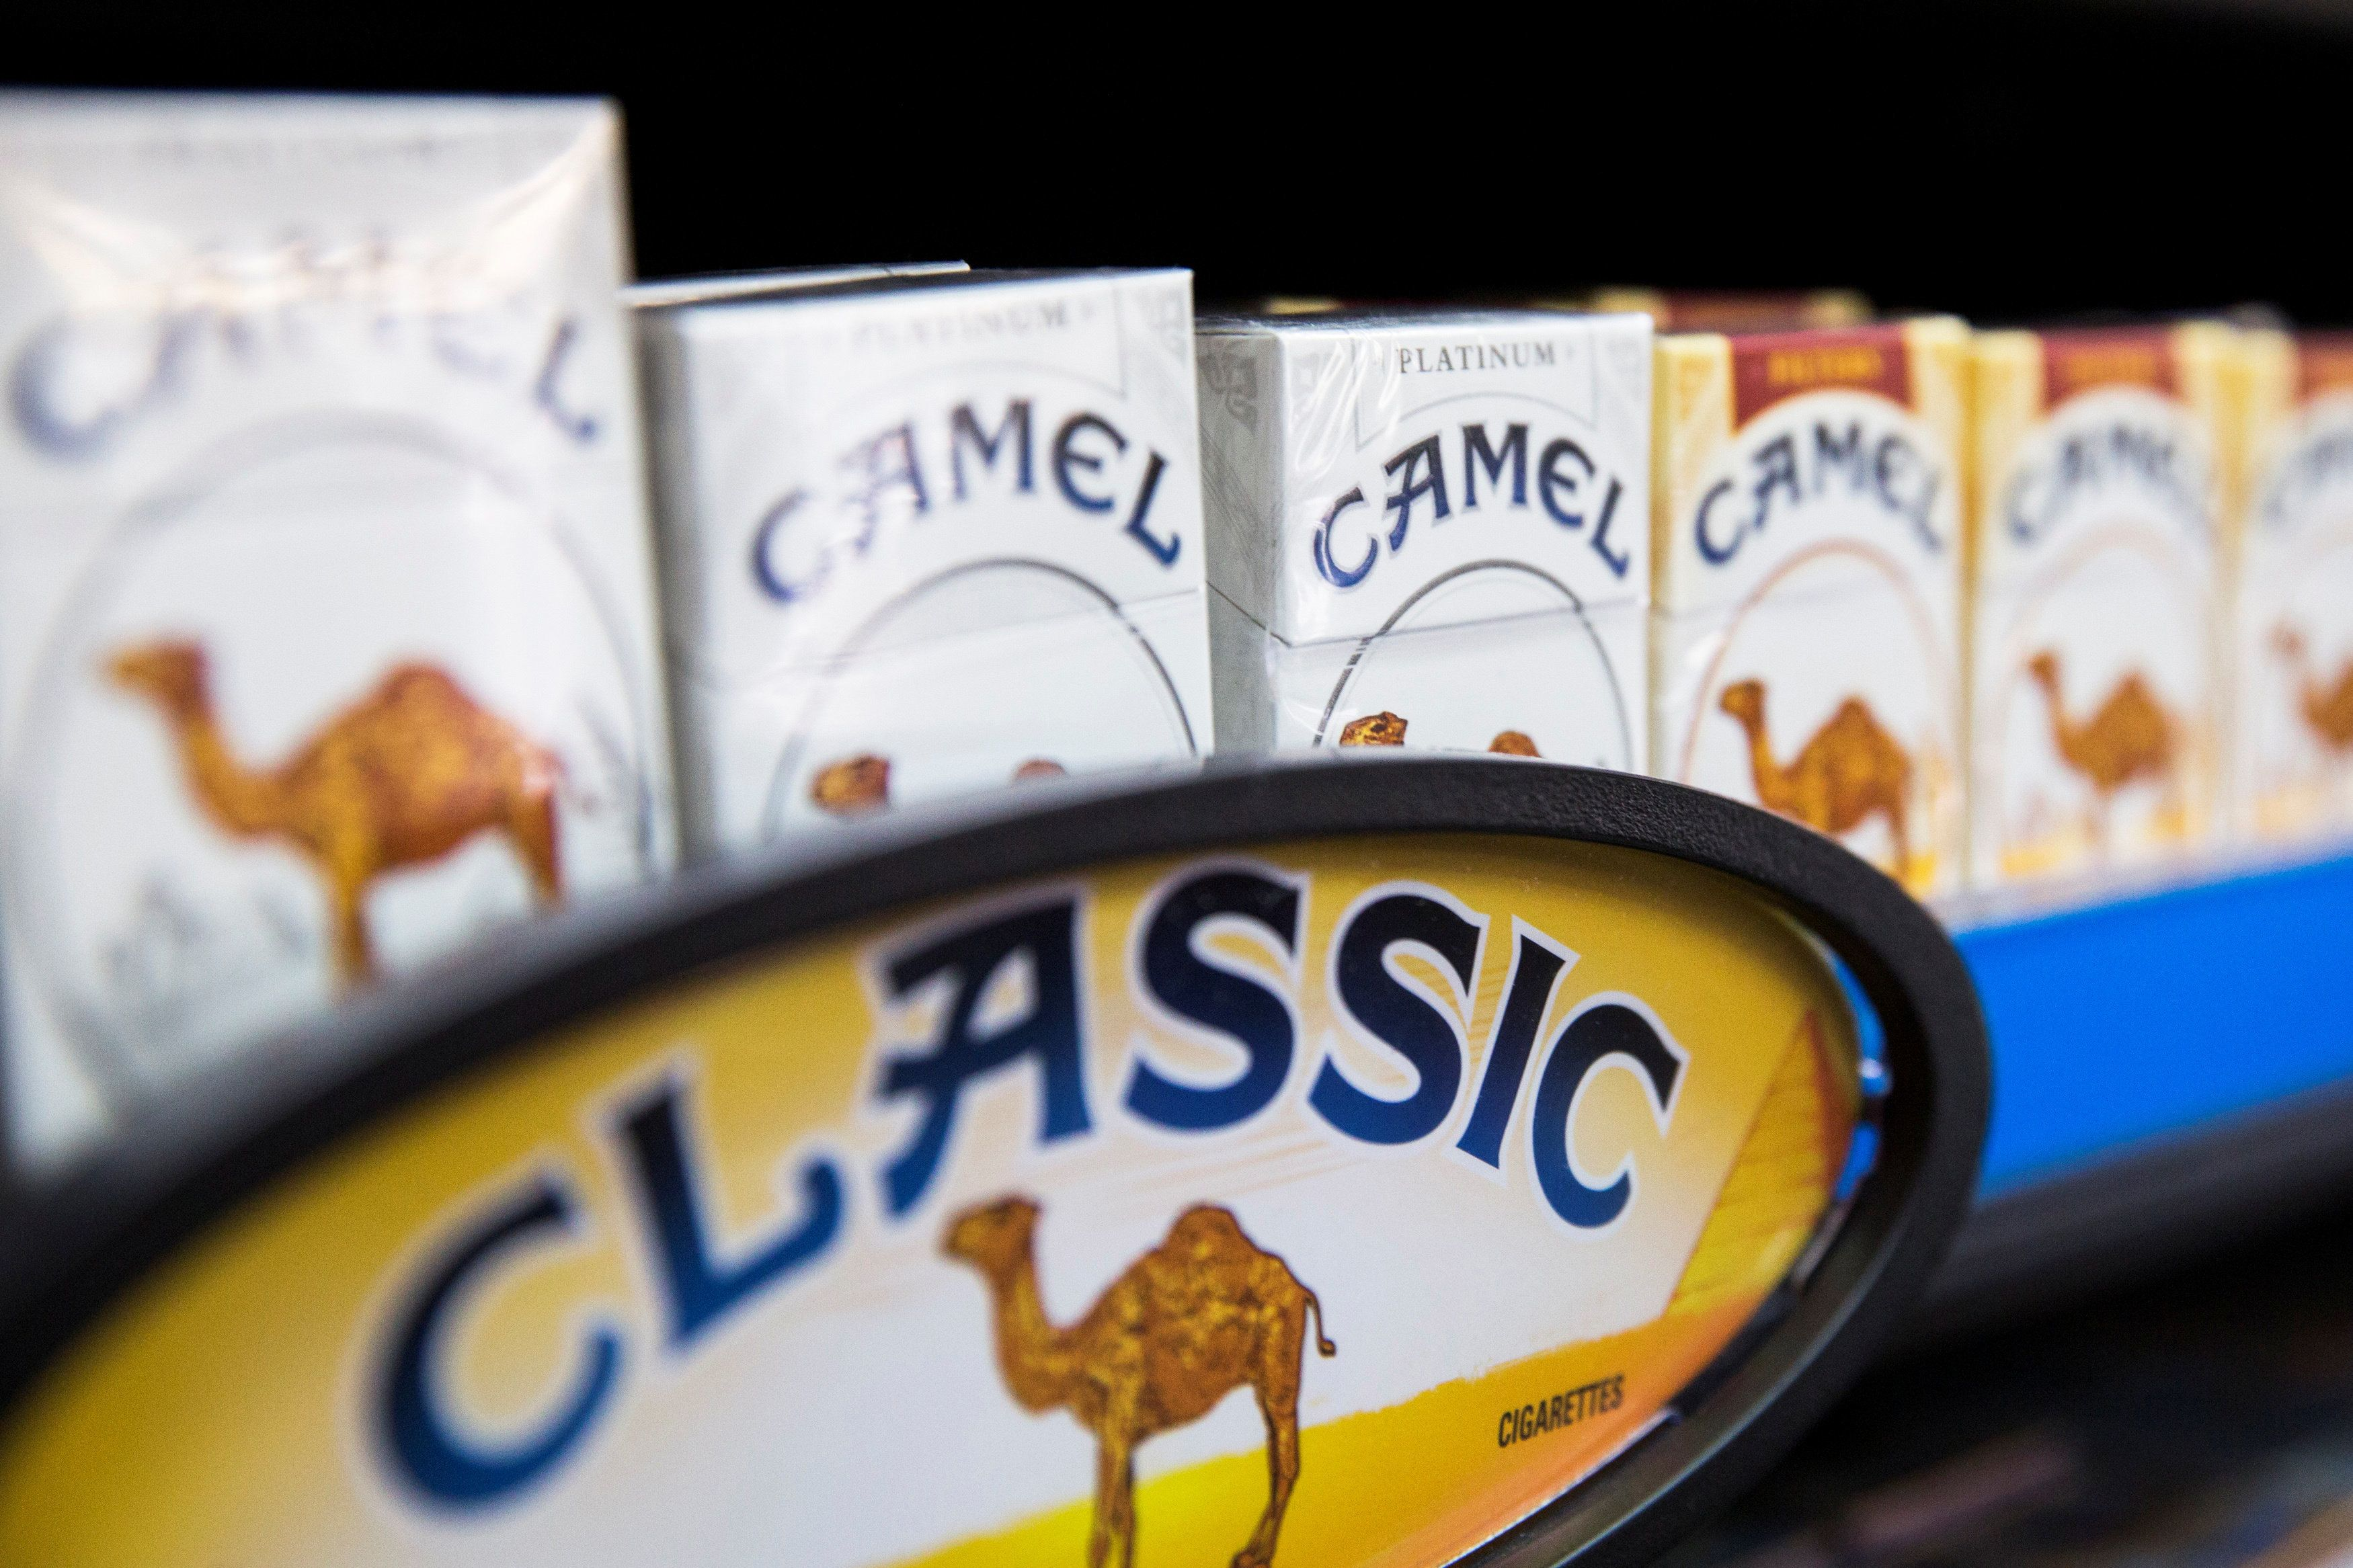 Camel cigarettes are stacked on a shelf inside a tobacco store in New York July 11, 2014.   REUTERS/Lucas Jackson/File Photo     TPX IMAGES OF THE DAY